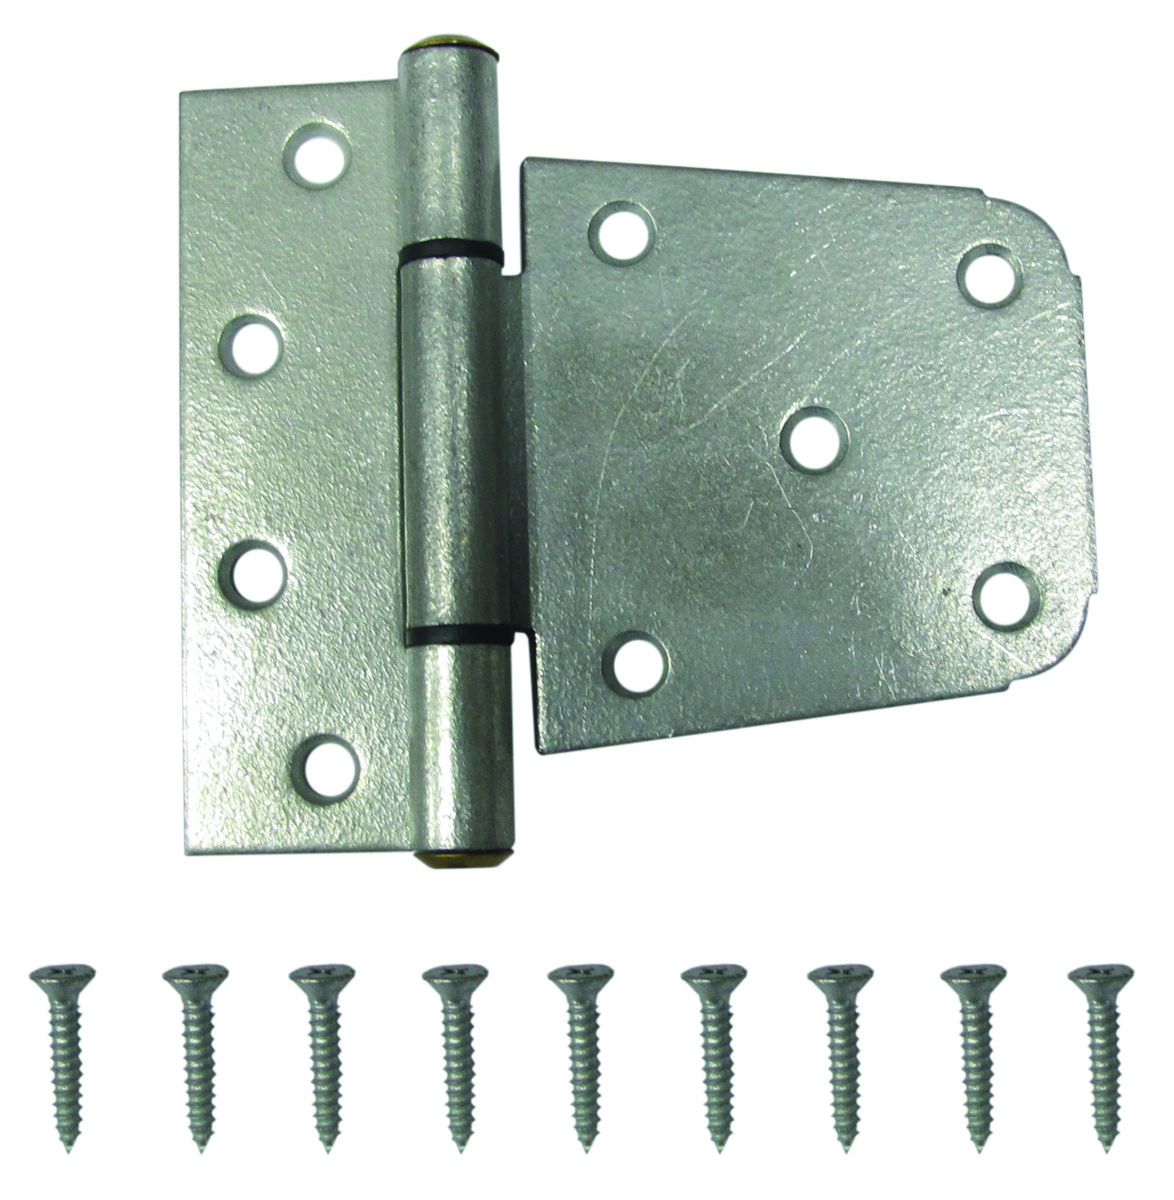 ProSource LR-182-PS Gate Hinge Heavy Duty Galvanized Steel 3-1/3